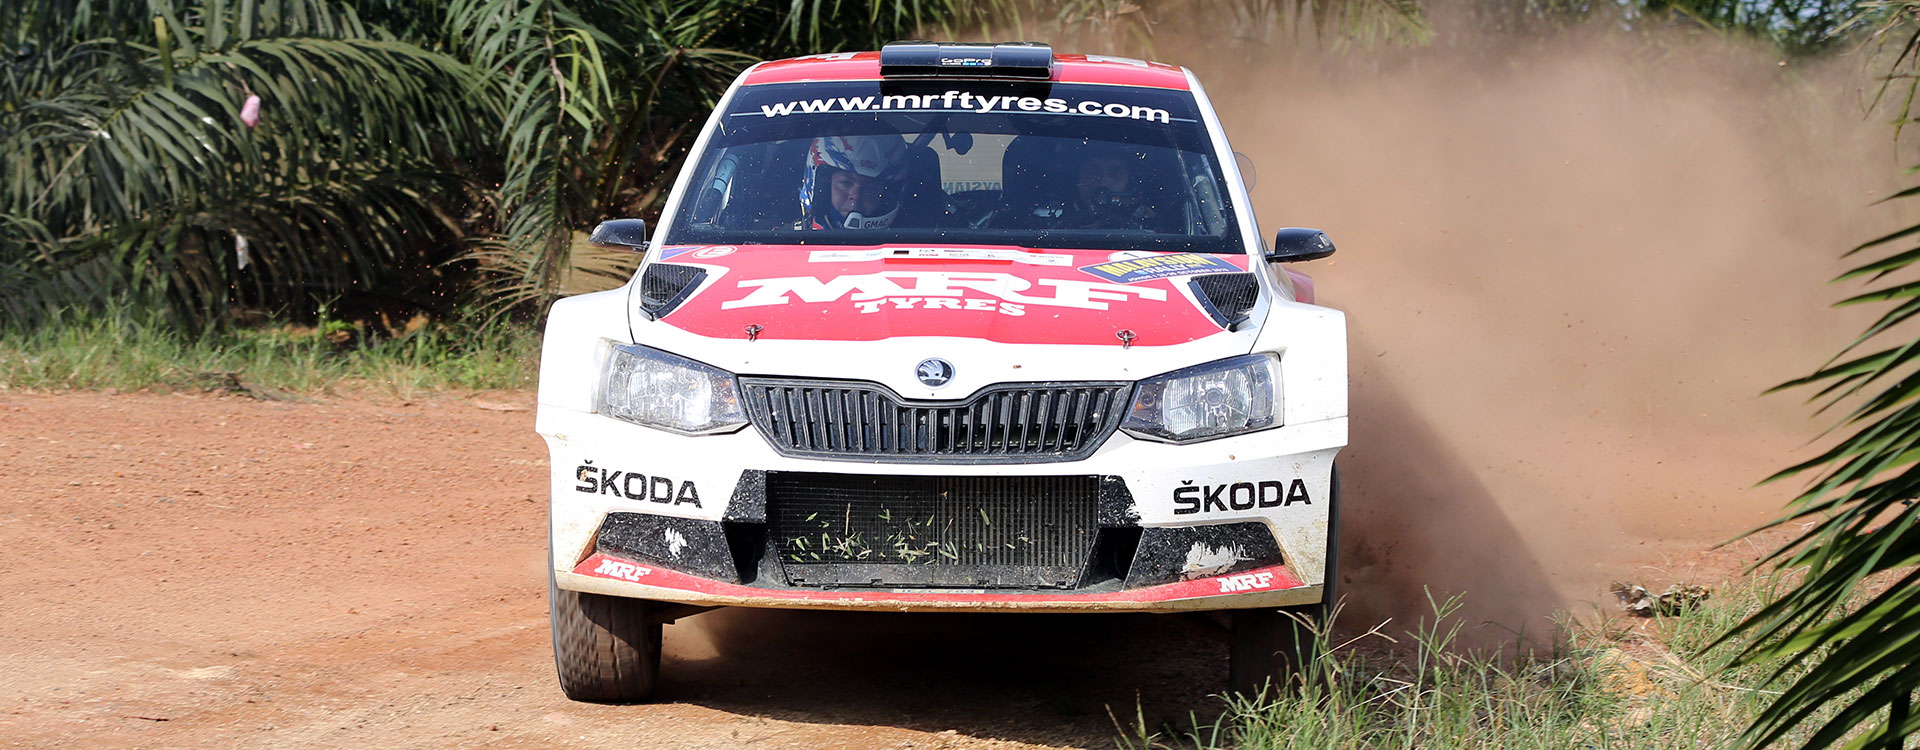 APRC India: Local hero Gill and ŠKODA to be welcomed as champions